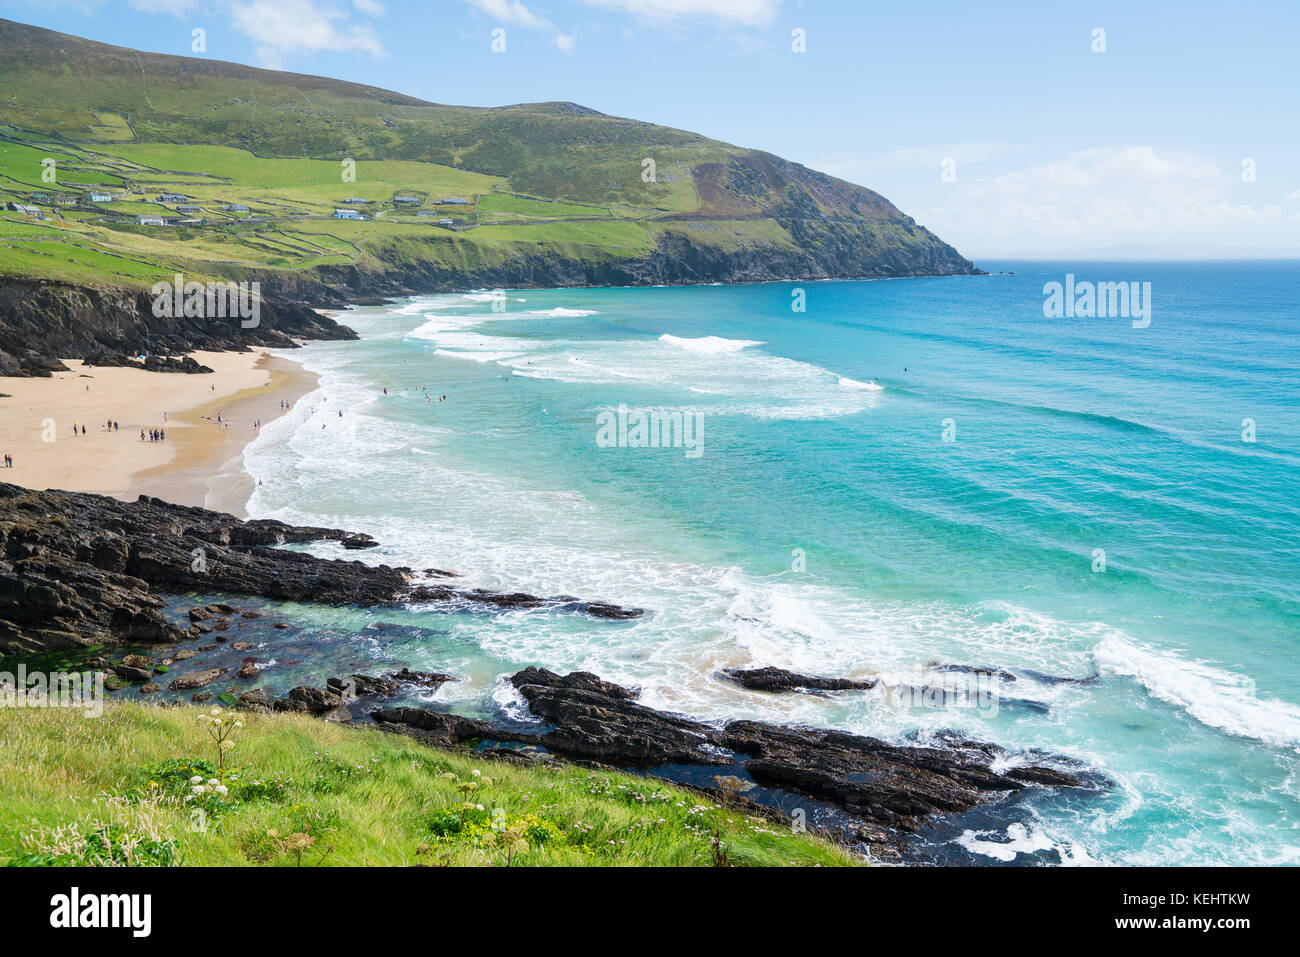 COUNTY KERRY, IRELAND- AUGUST 13, 2017; People enjoying an Irish summer day in distance on beach on west coast along - Stock Image